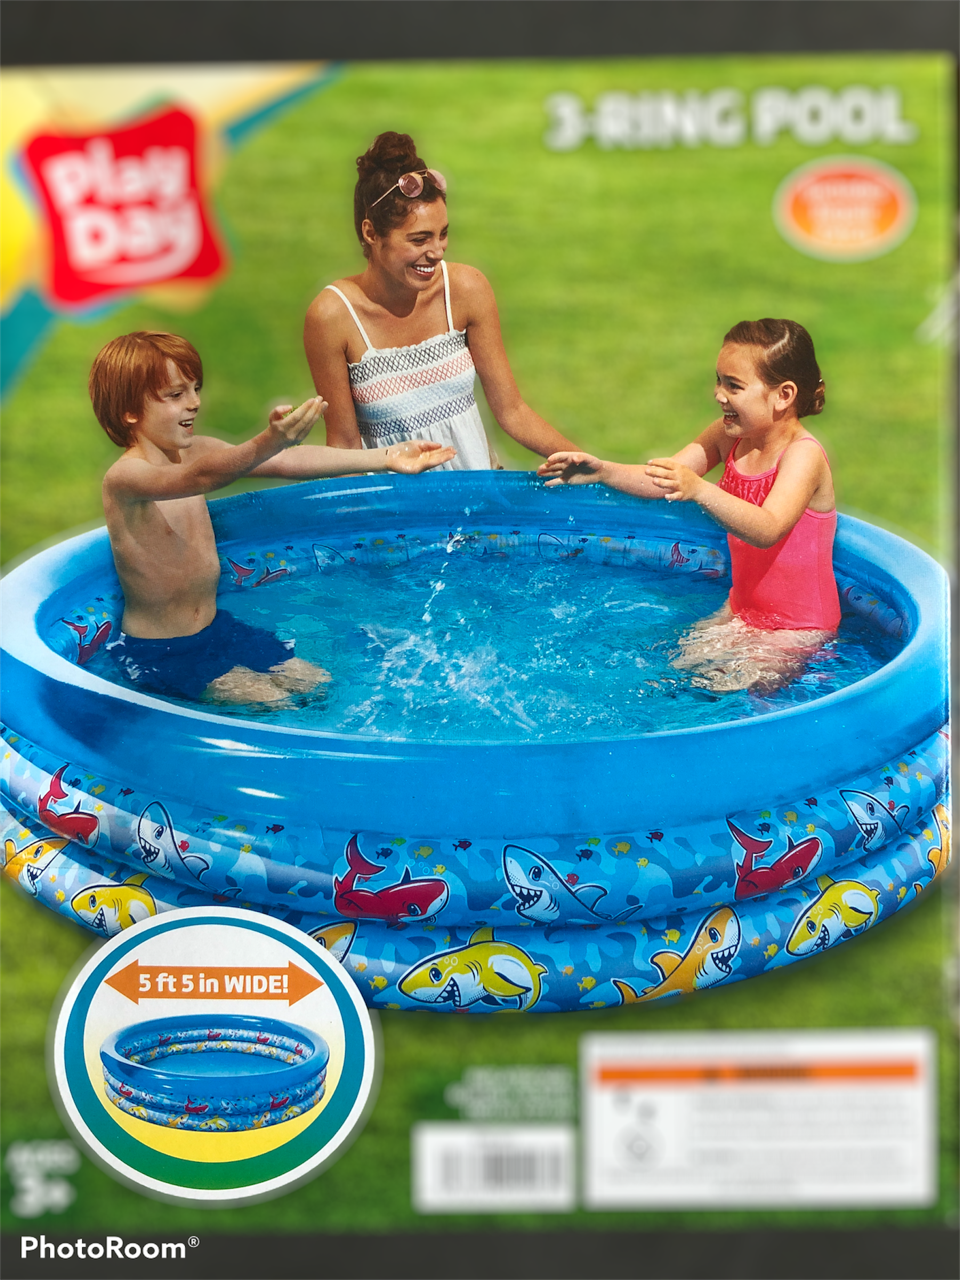 Pool Inflatable Swimming for children Play Day 5.5 Ft Long Round 3 Ring pool NEW